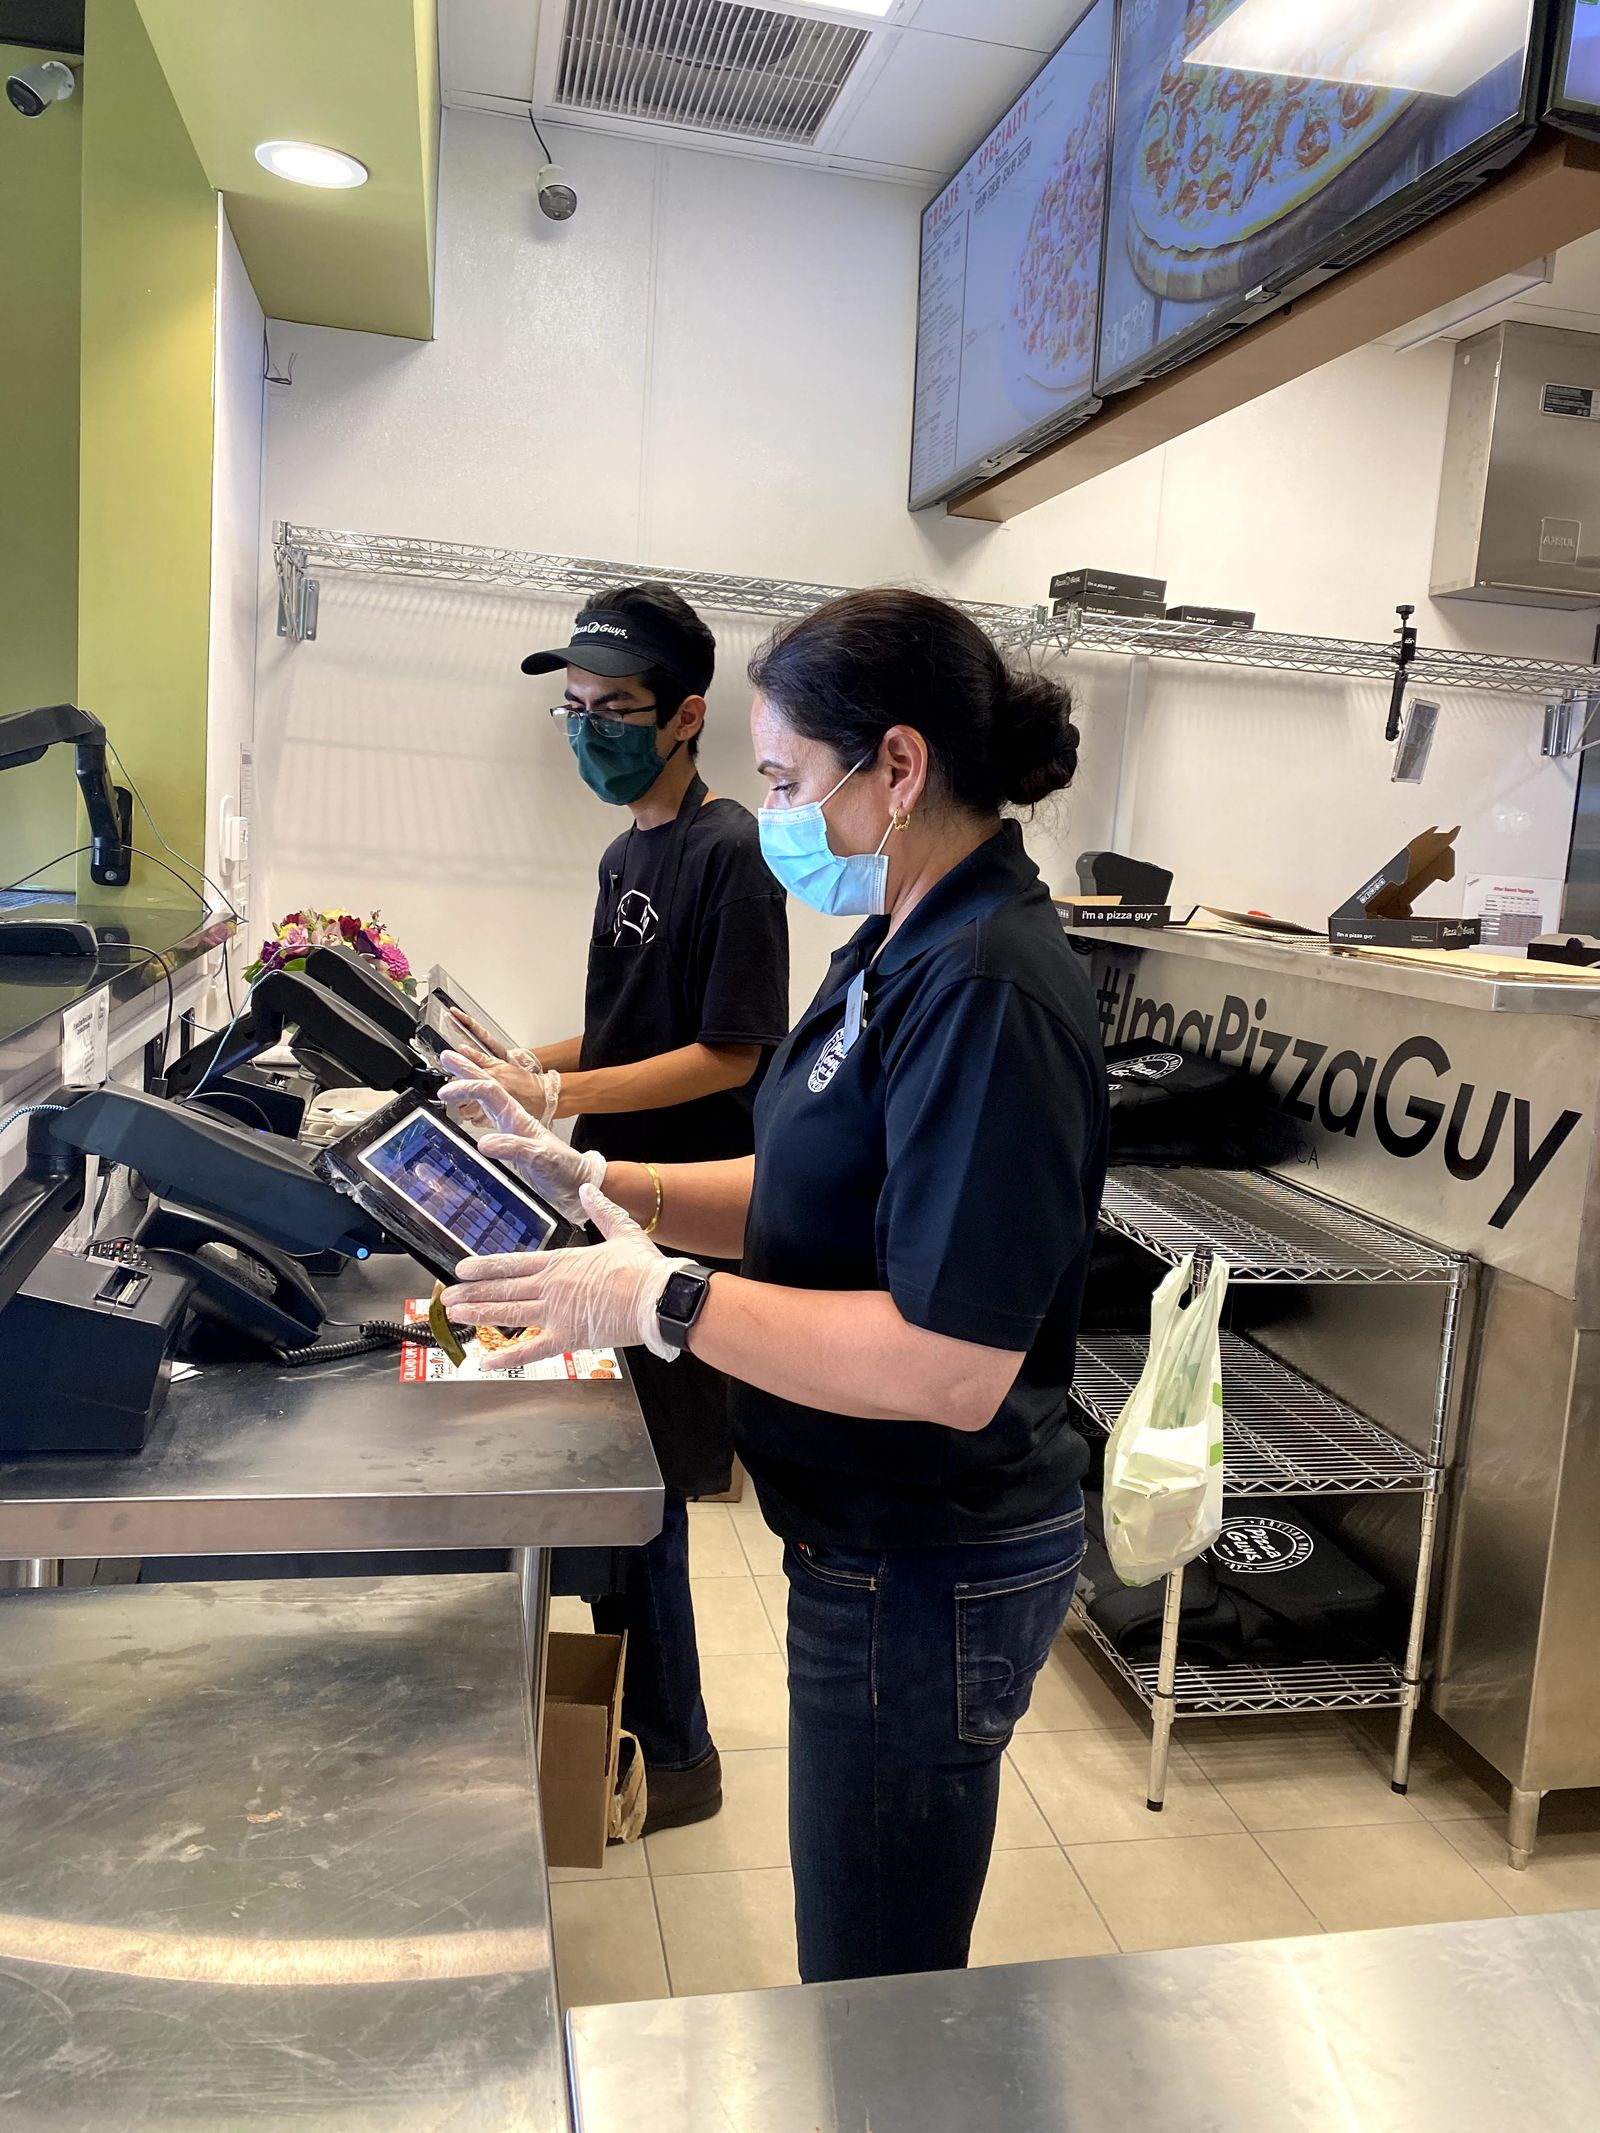 Pizza Guys Eyeing Additional Expansion in San Diego